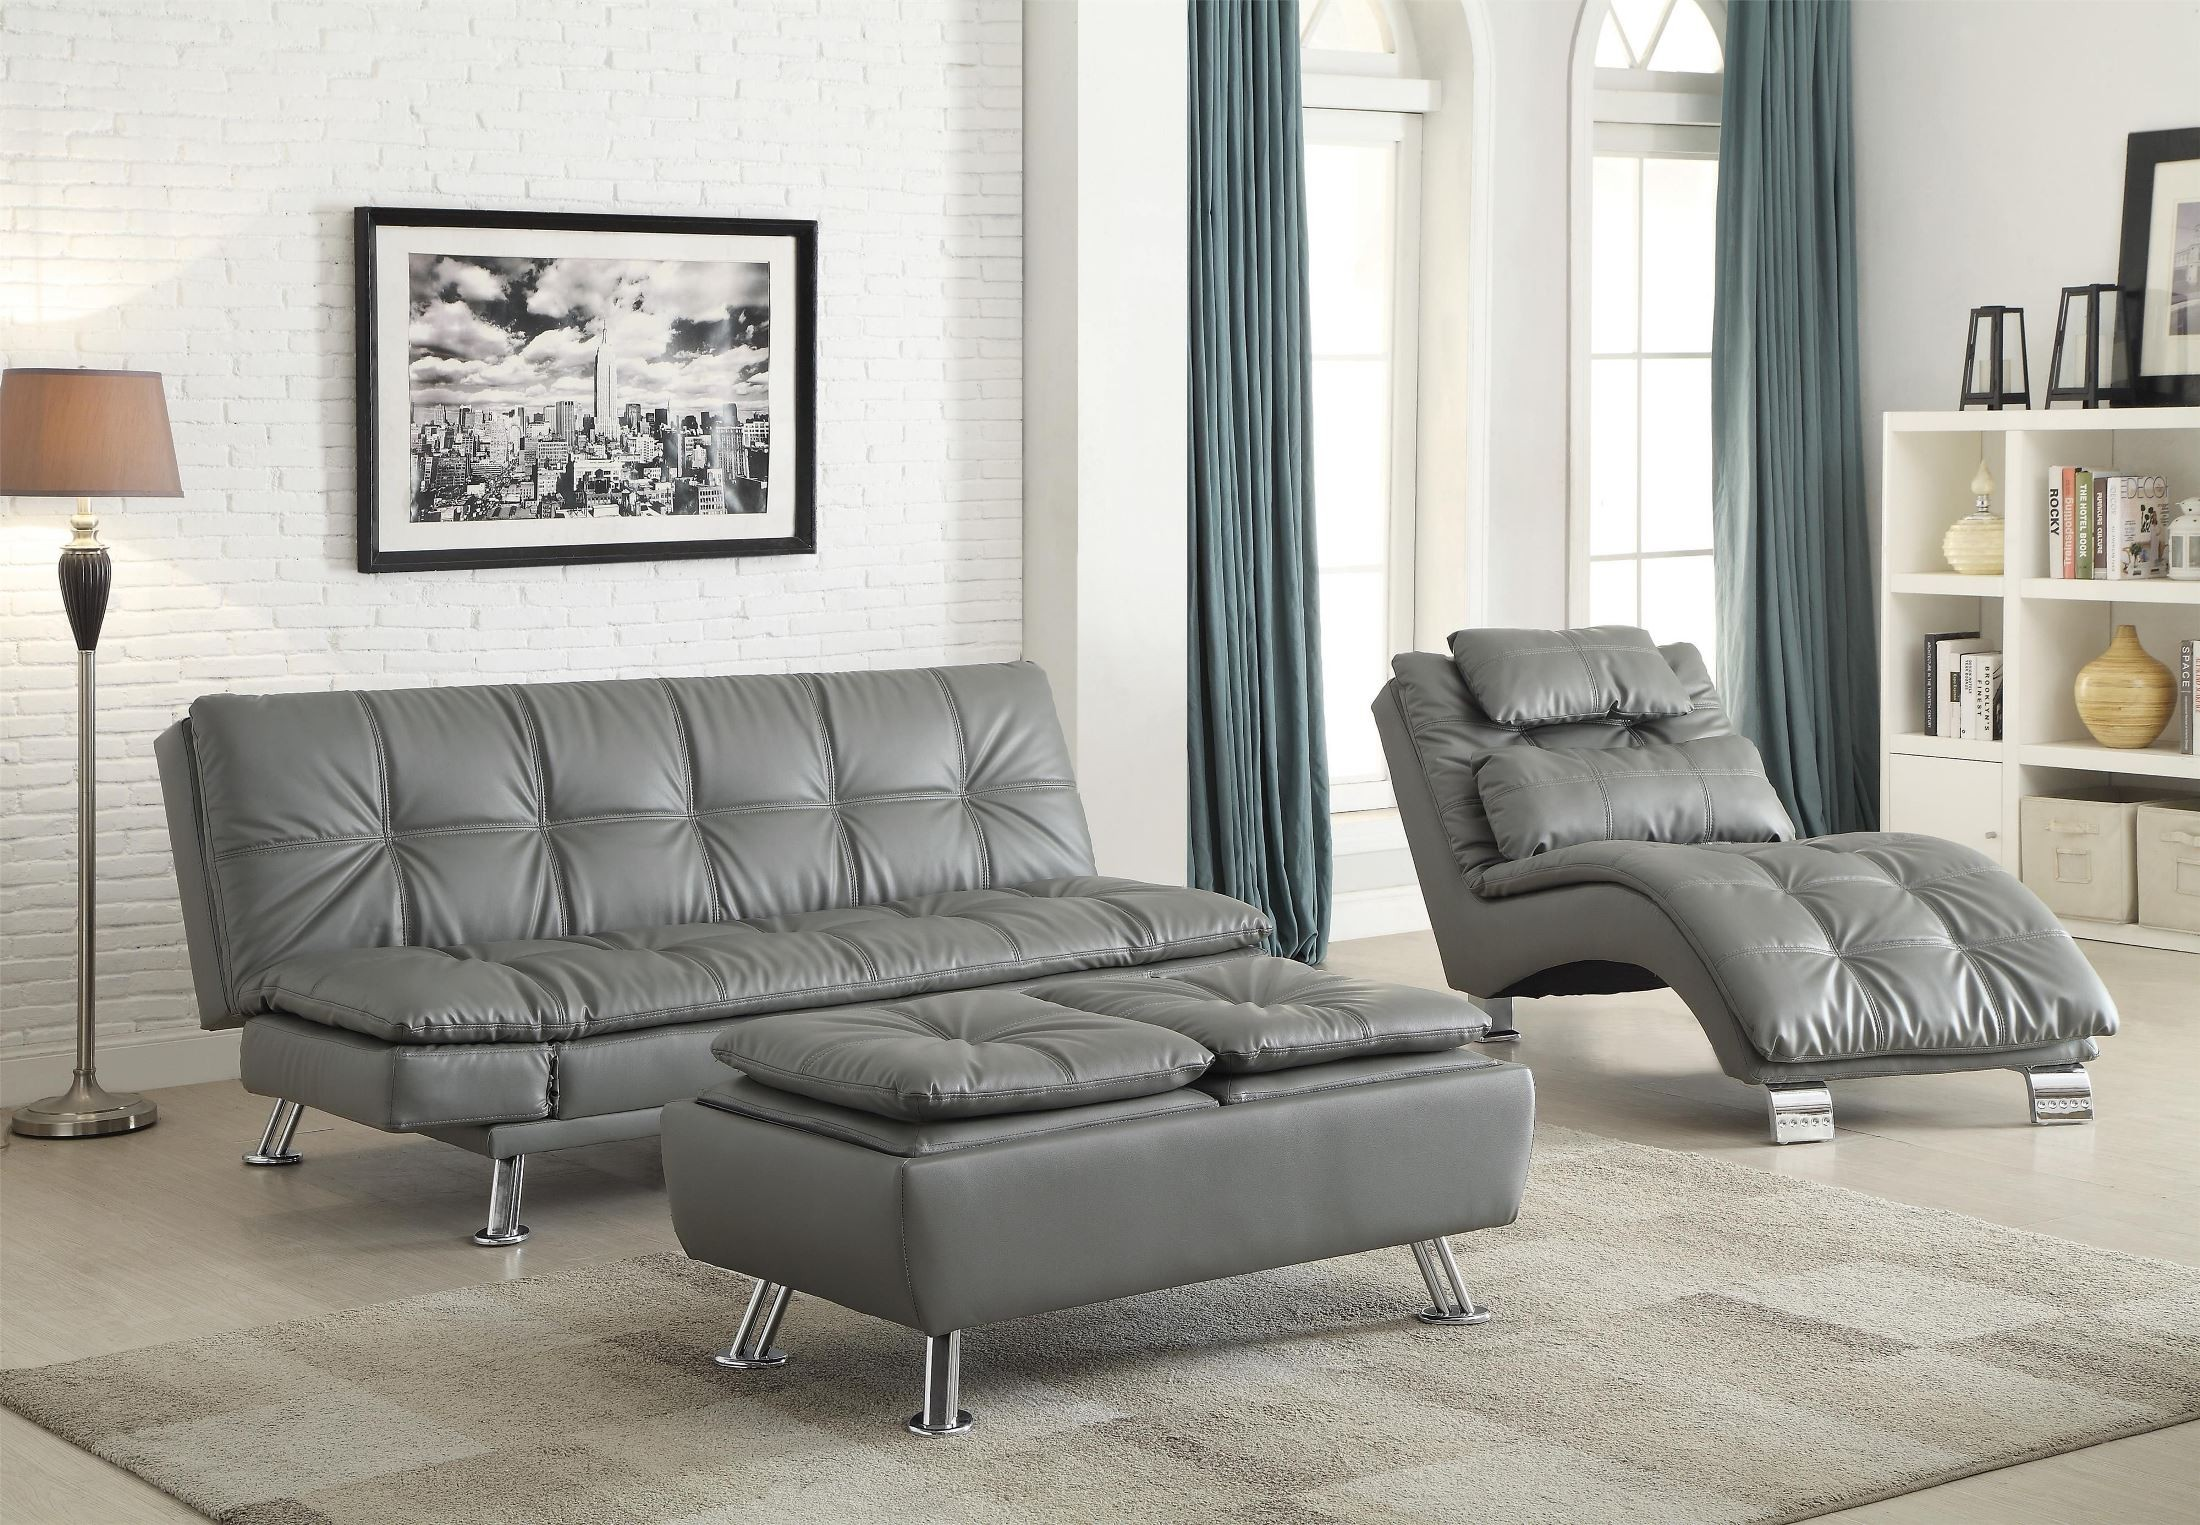 Dilleston Futon Style Living Room Set from